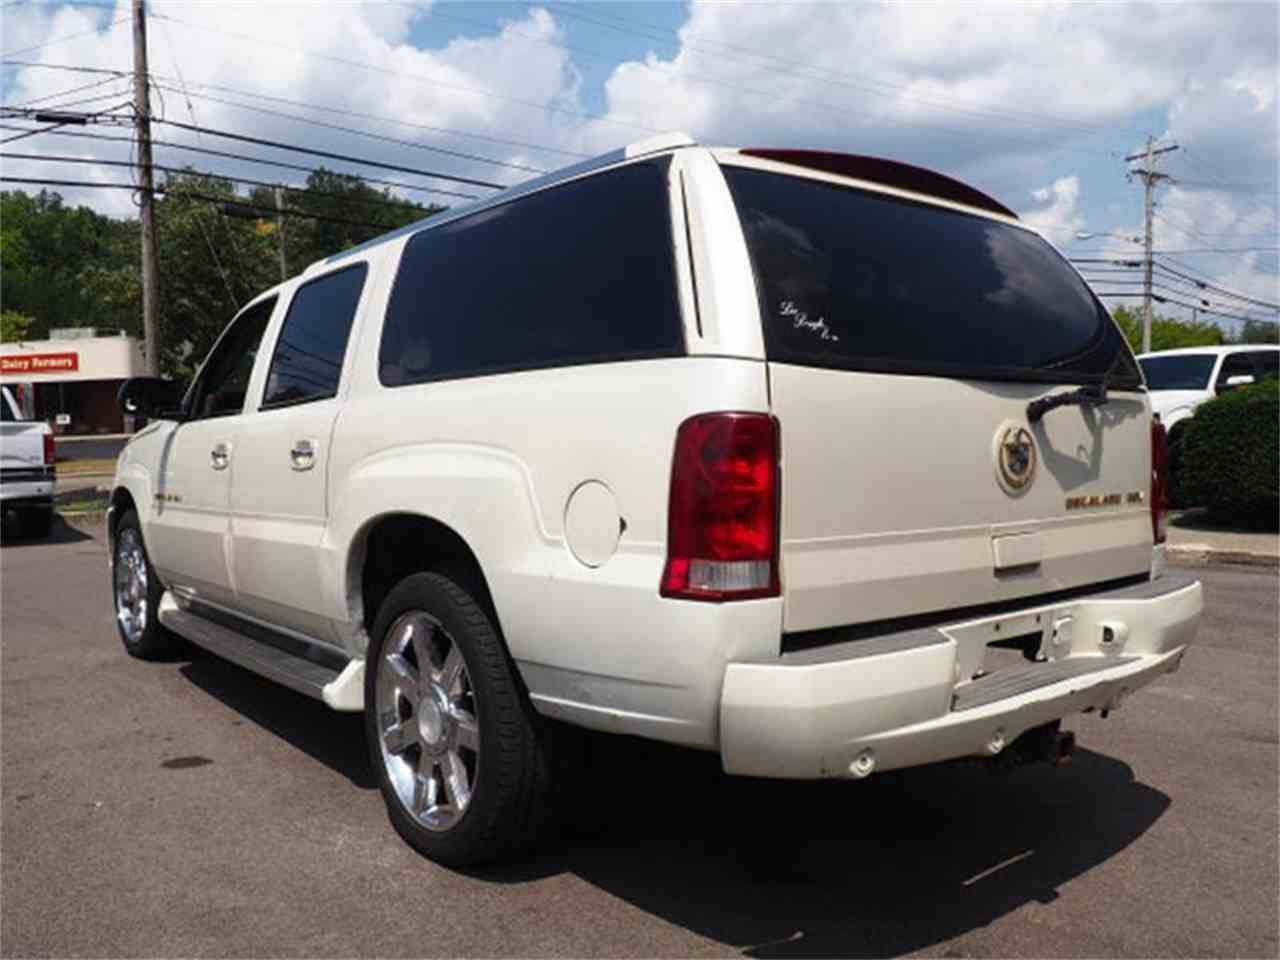 Large Picture of 2003 Cadillac Escalade located in Loveland Ohio - $3,000.00 - MBL6